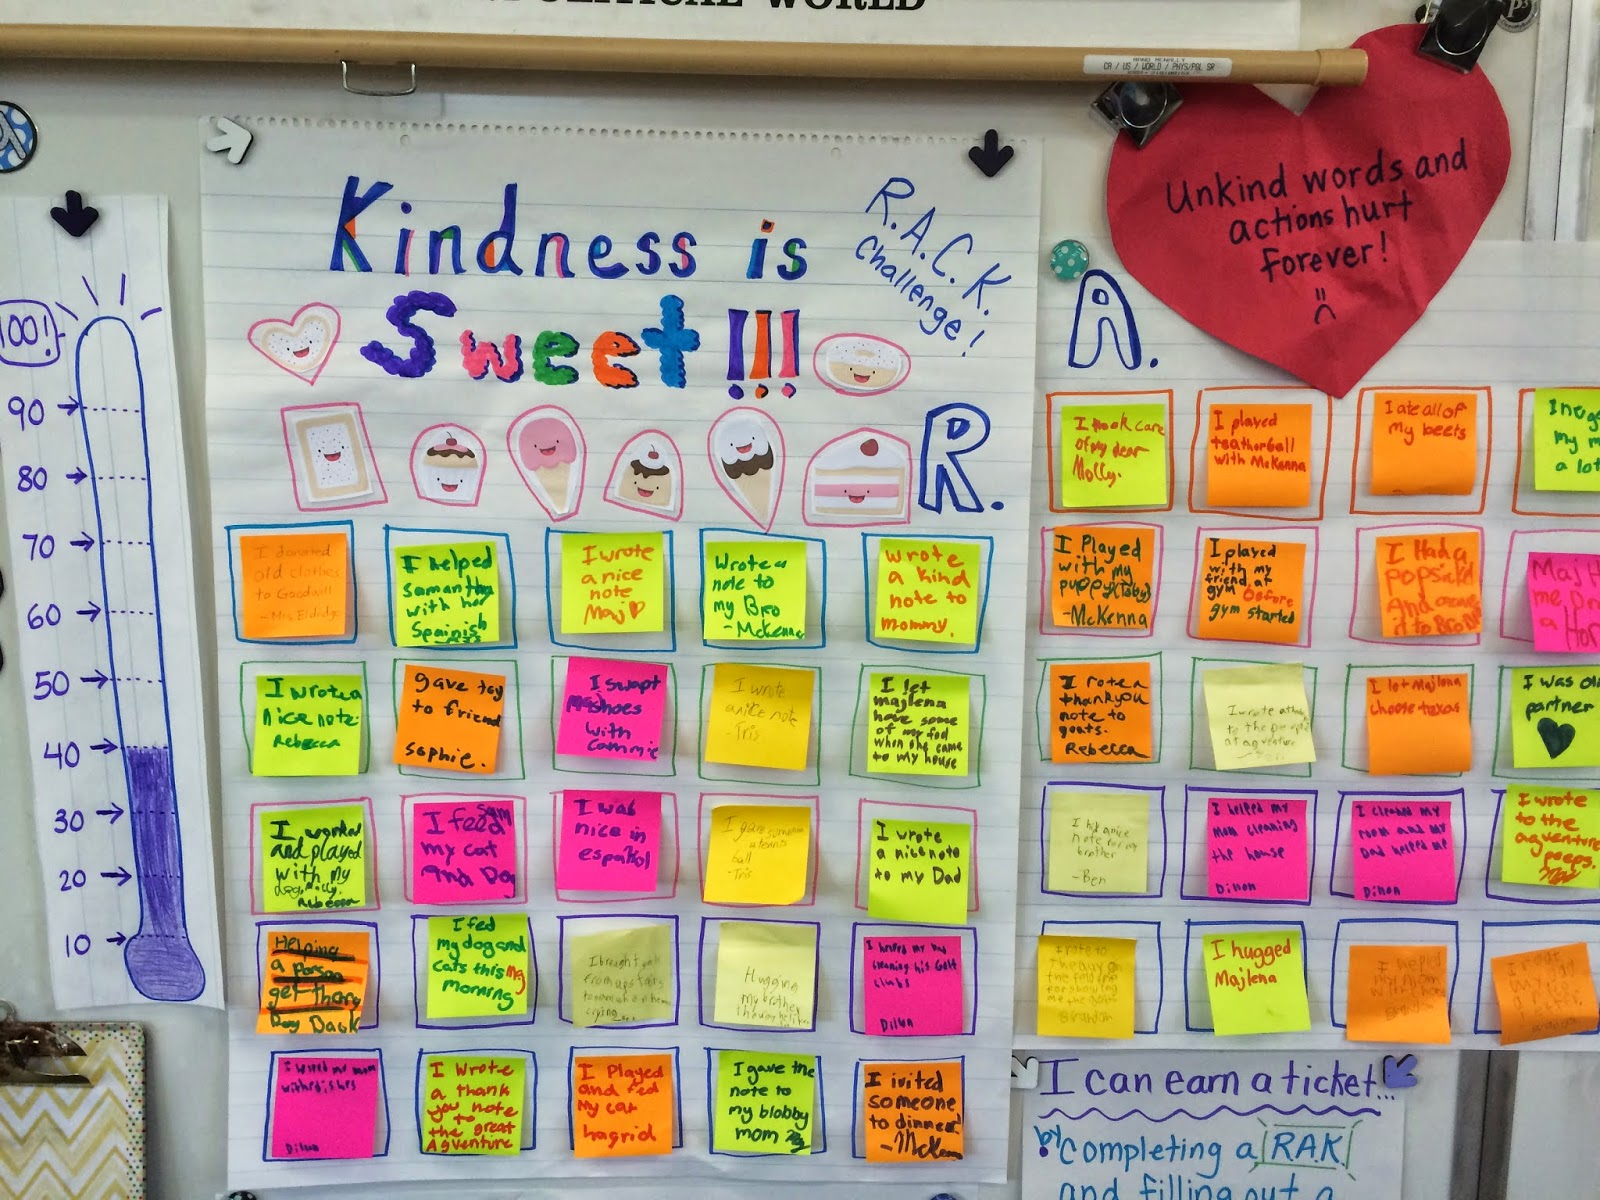 kindness essay 2 essay on kindness for kids will write your essaysfor money get a